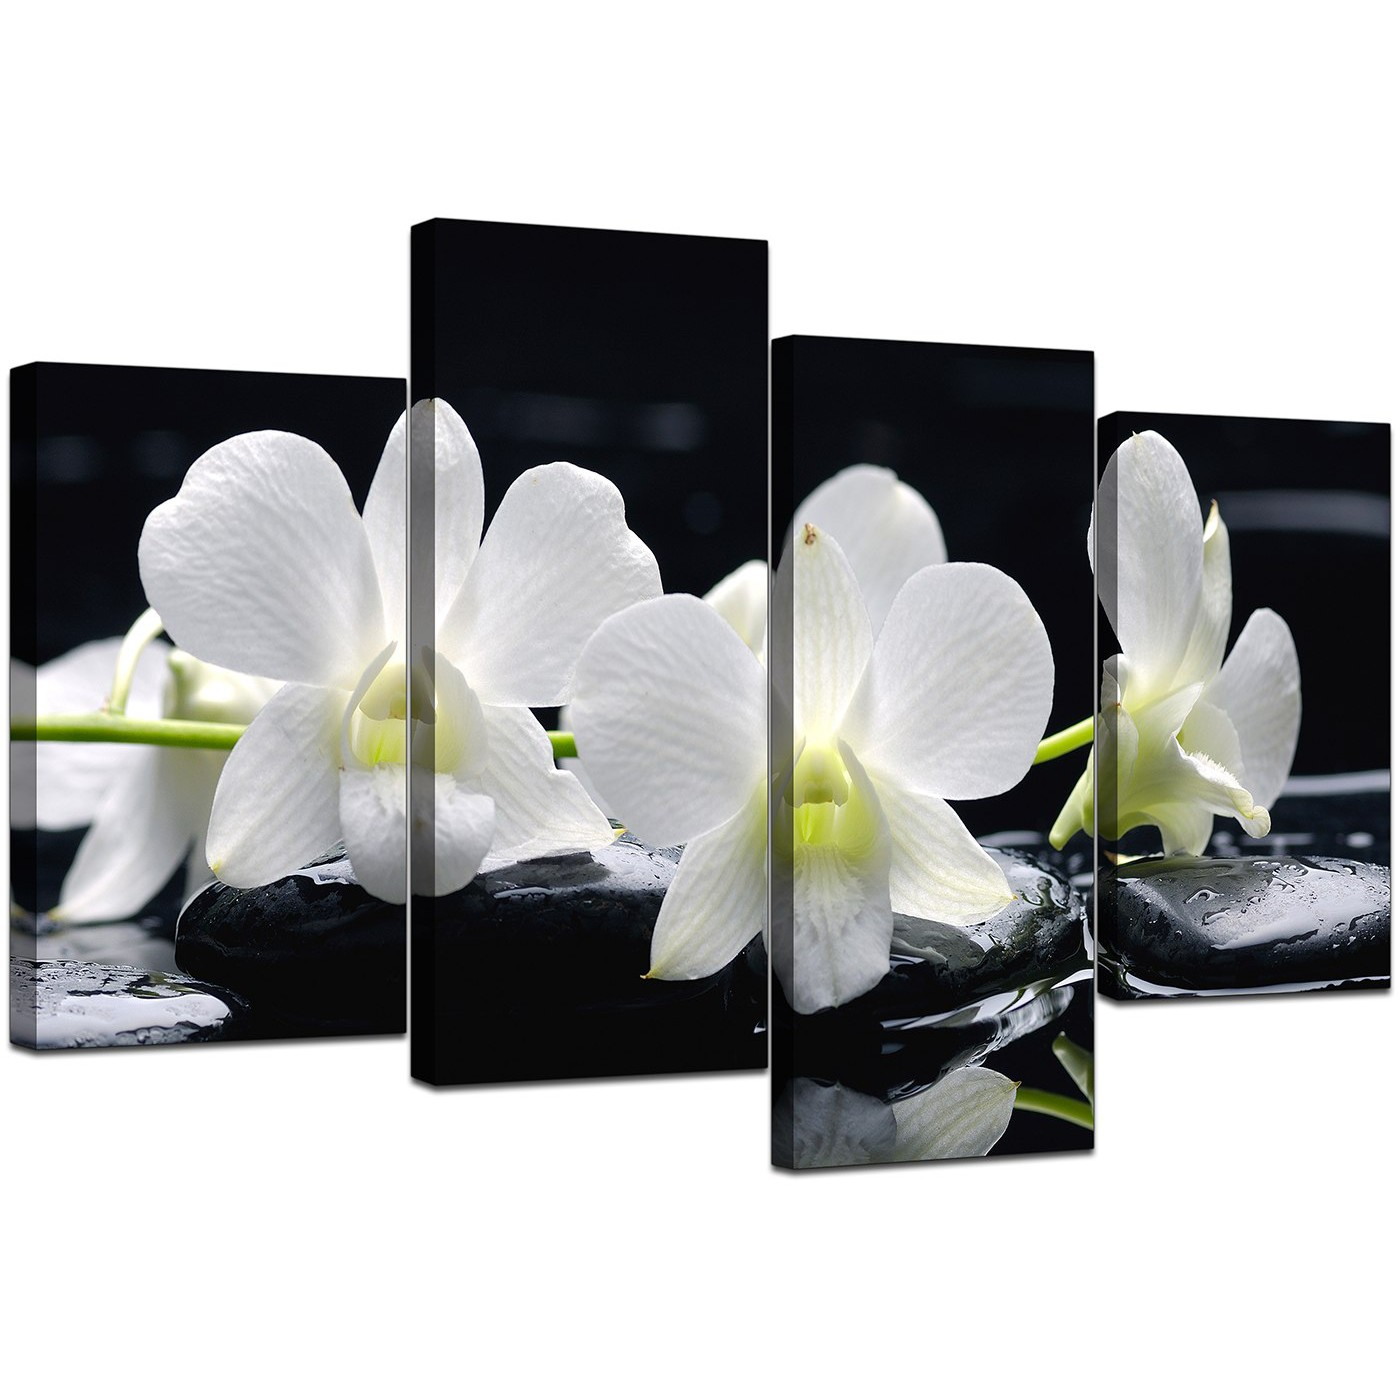 Canvas Art Canvas Wall Art Of Orchids In Black White For Your Living Room